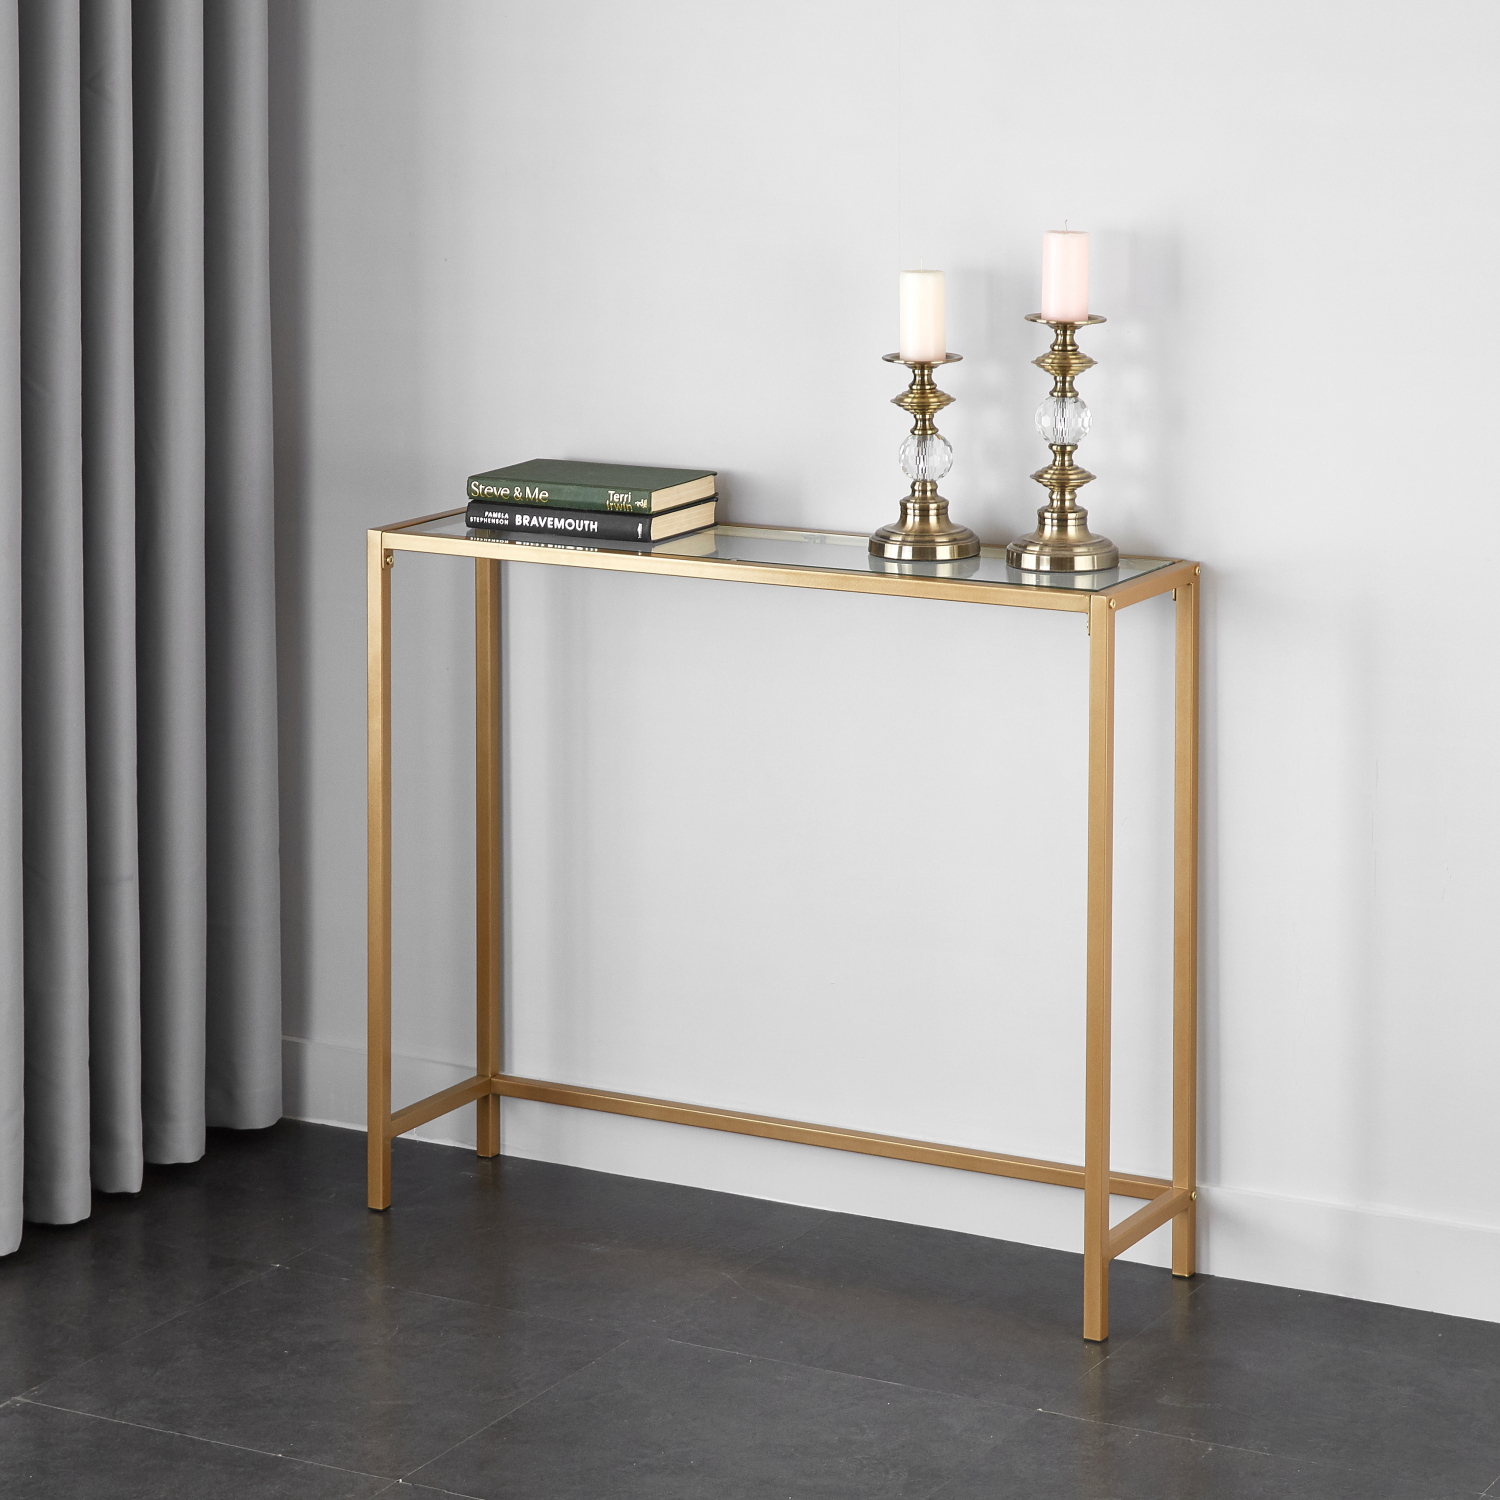 Superbe Details About Slim Console Table Entryway Sofa Gold Modern Narrow Glass  Small Living Room Hall